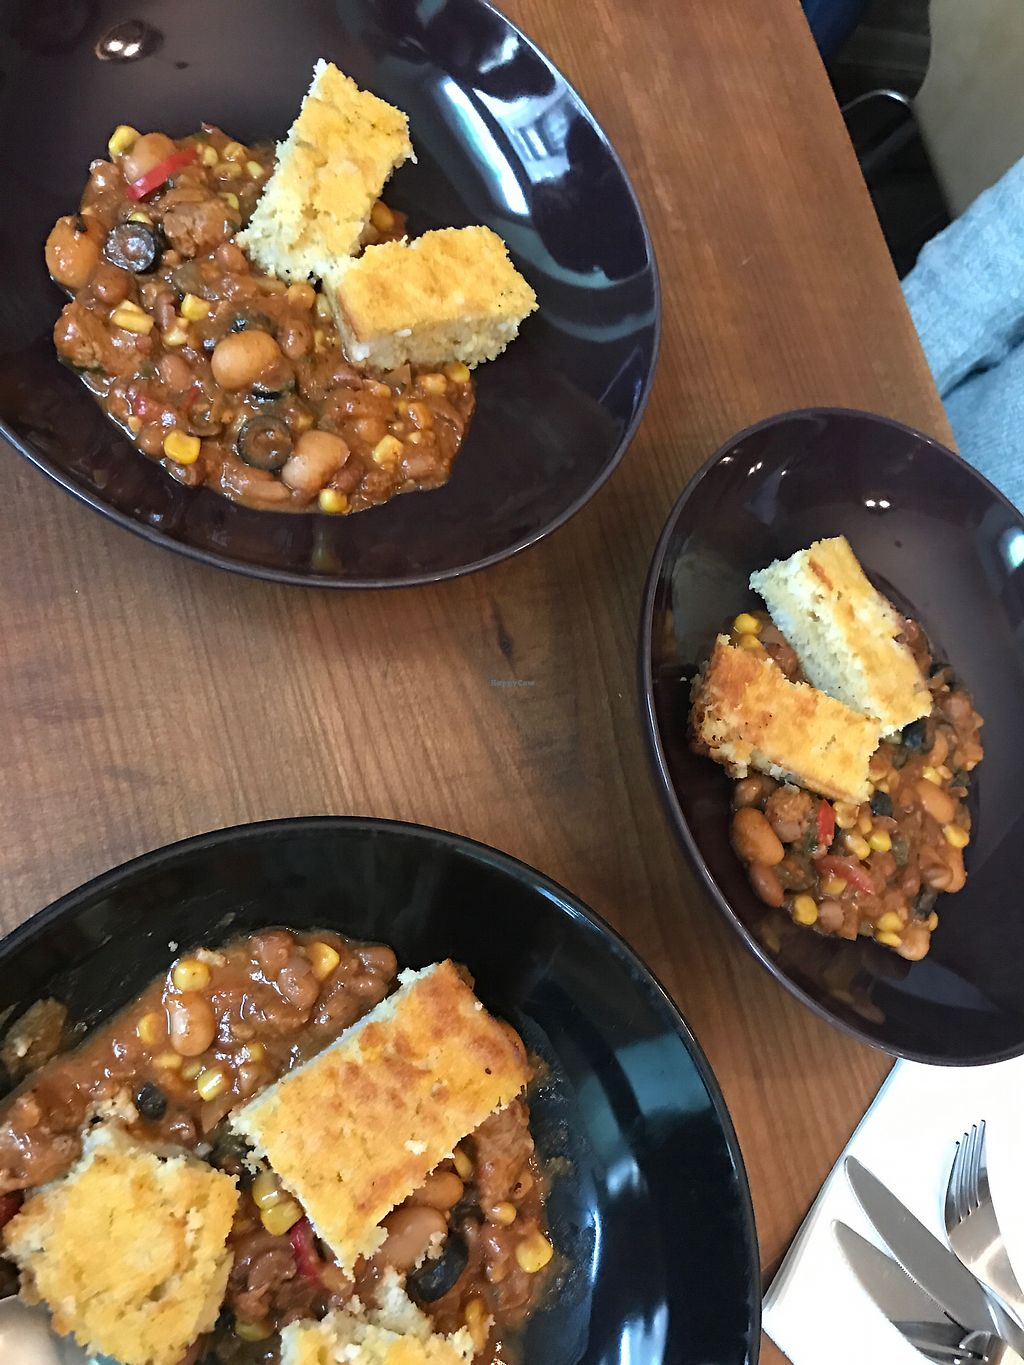 """Photo of Vegan Bar  by <a href=""""/members/profile/AnaBanannaPancake"""">AnaBanannaPancake</a> <br/>Chilli with corn bread  <br/> November 12, 2017  - <a href='/contact/abuse/image/41723/324645'>Report</a>"""